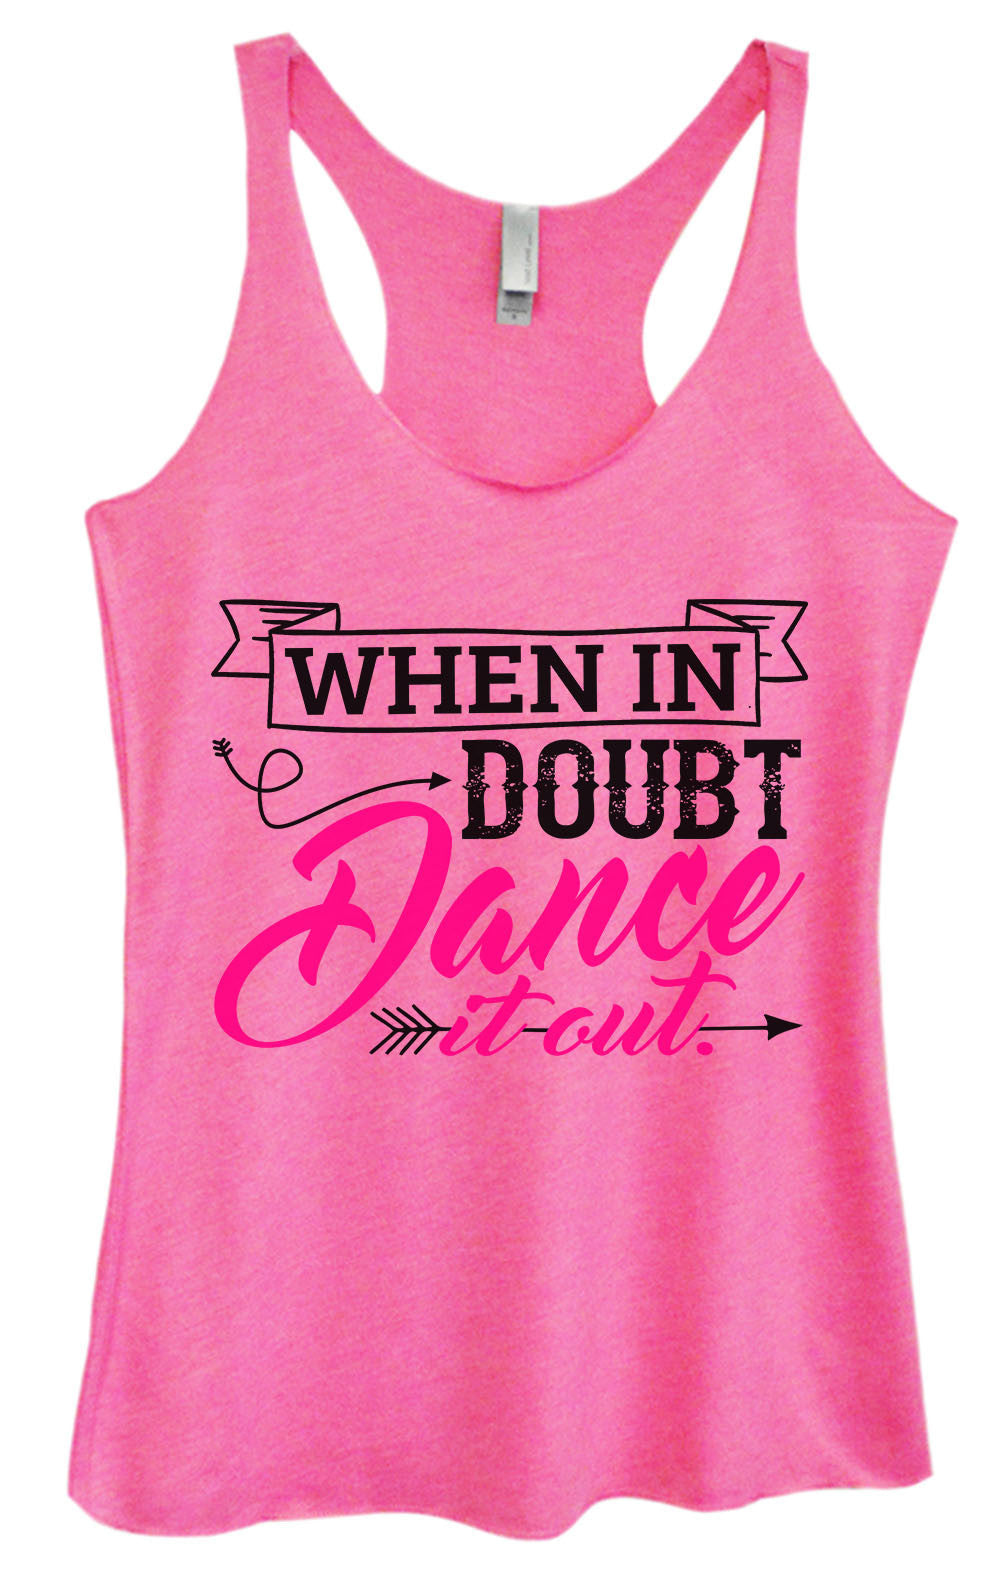 Womens Fashion Triblend Tank Top - When In Doubt Dance It Out. - Tri-1398 - Funny Shirts Tank Tops Burnouts and Triblends  - 4